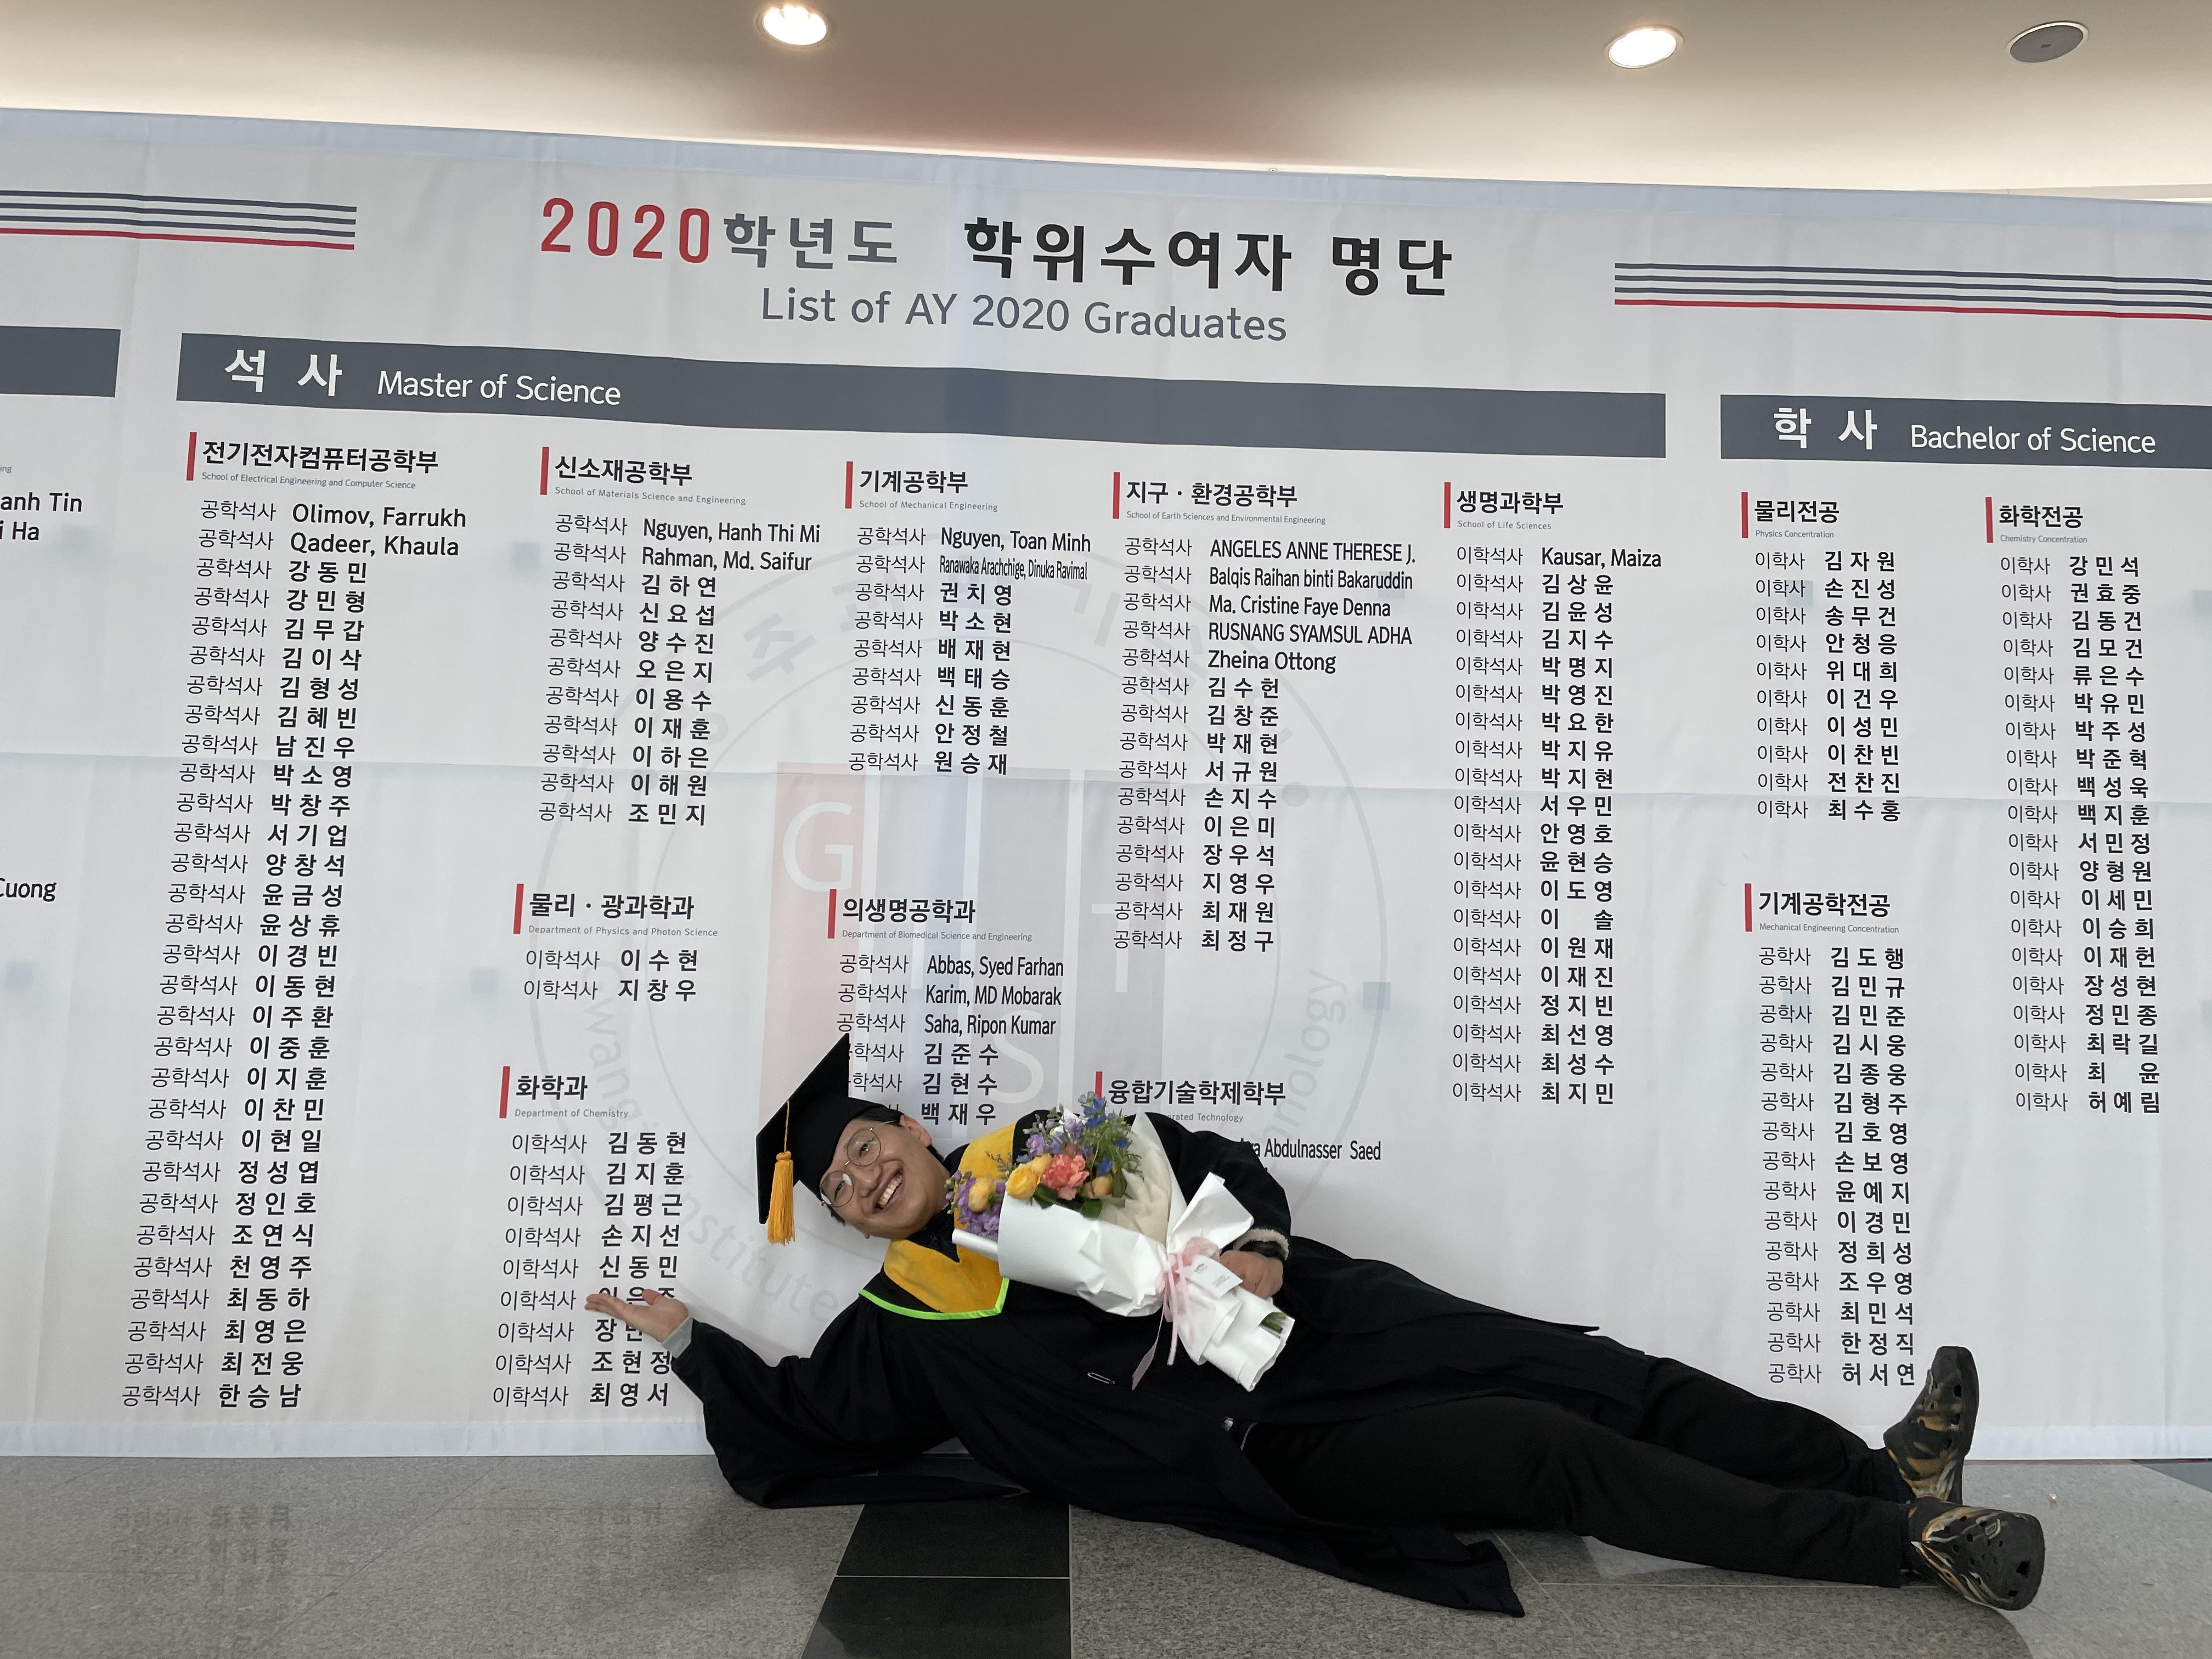 2021 Feb. graduation ceremony 이미지